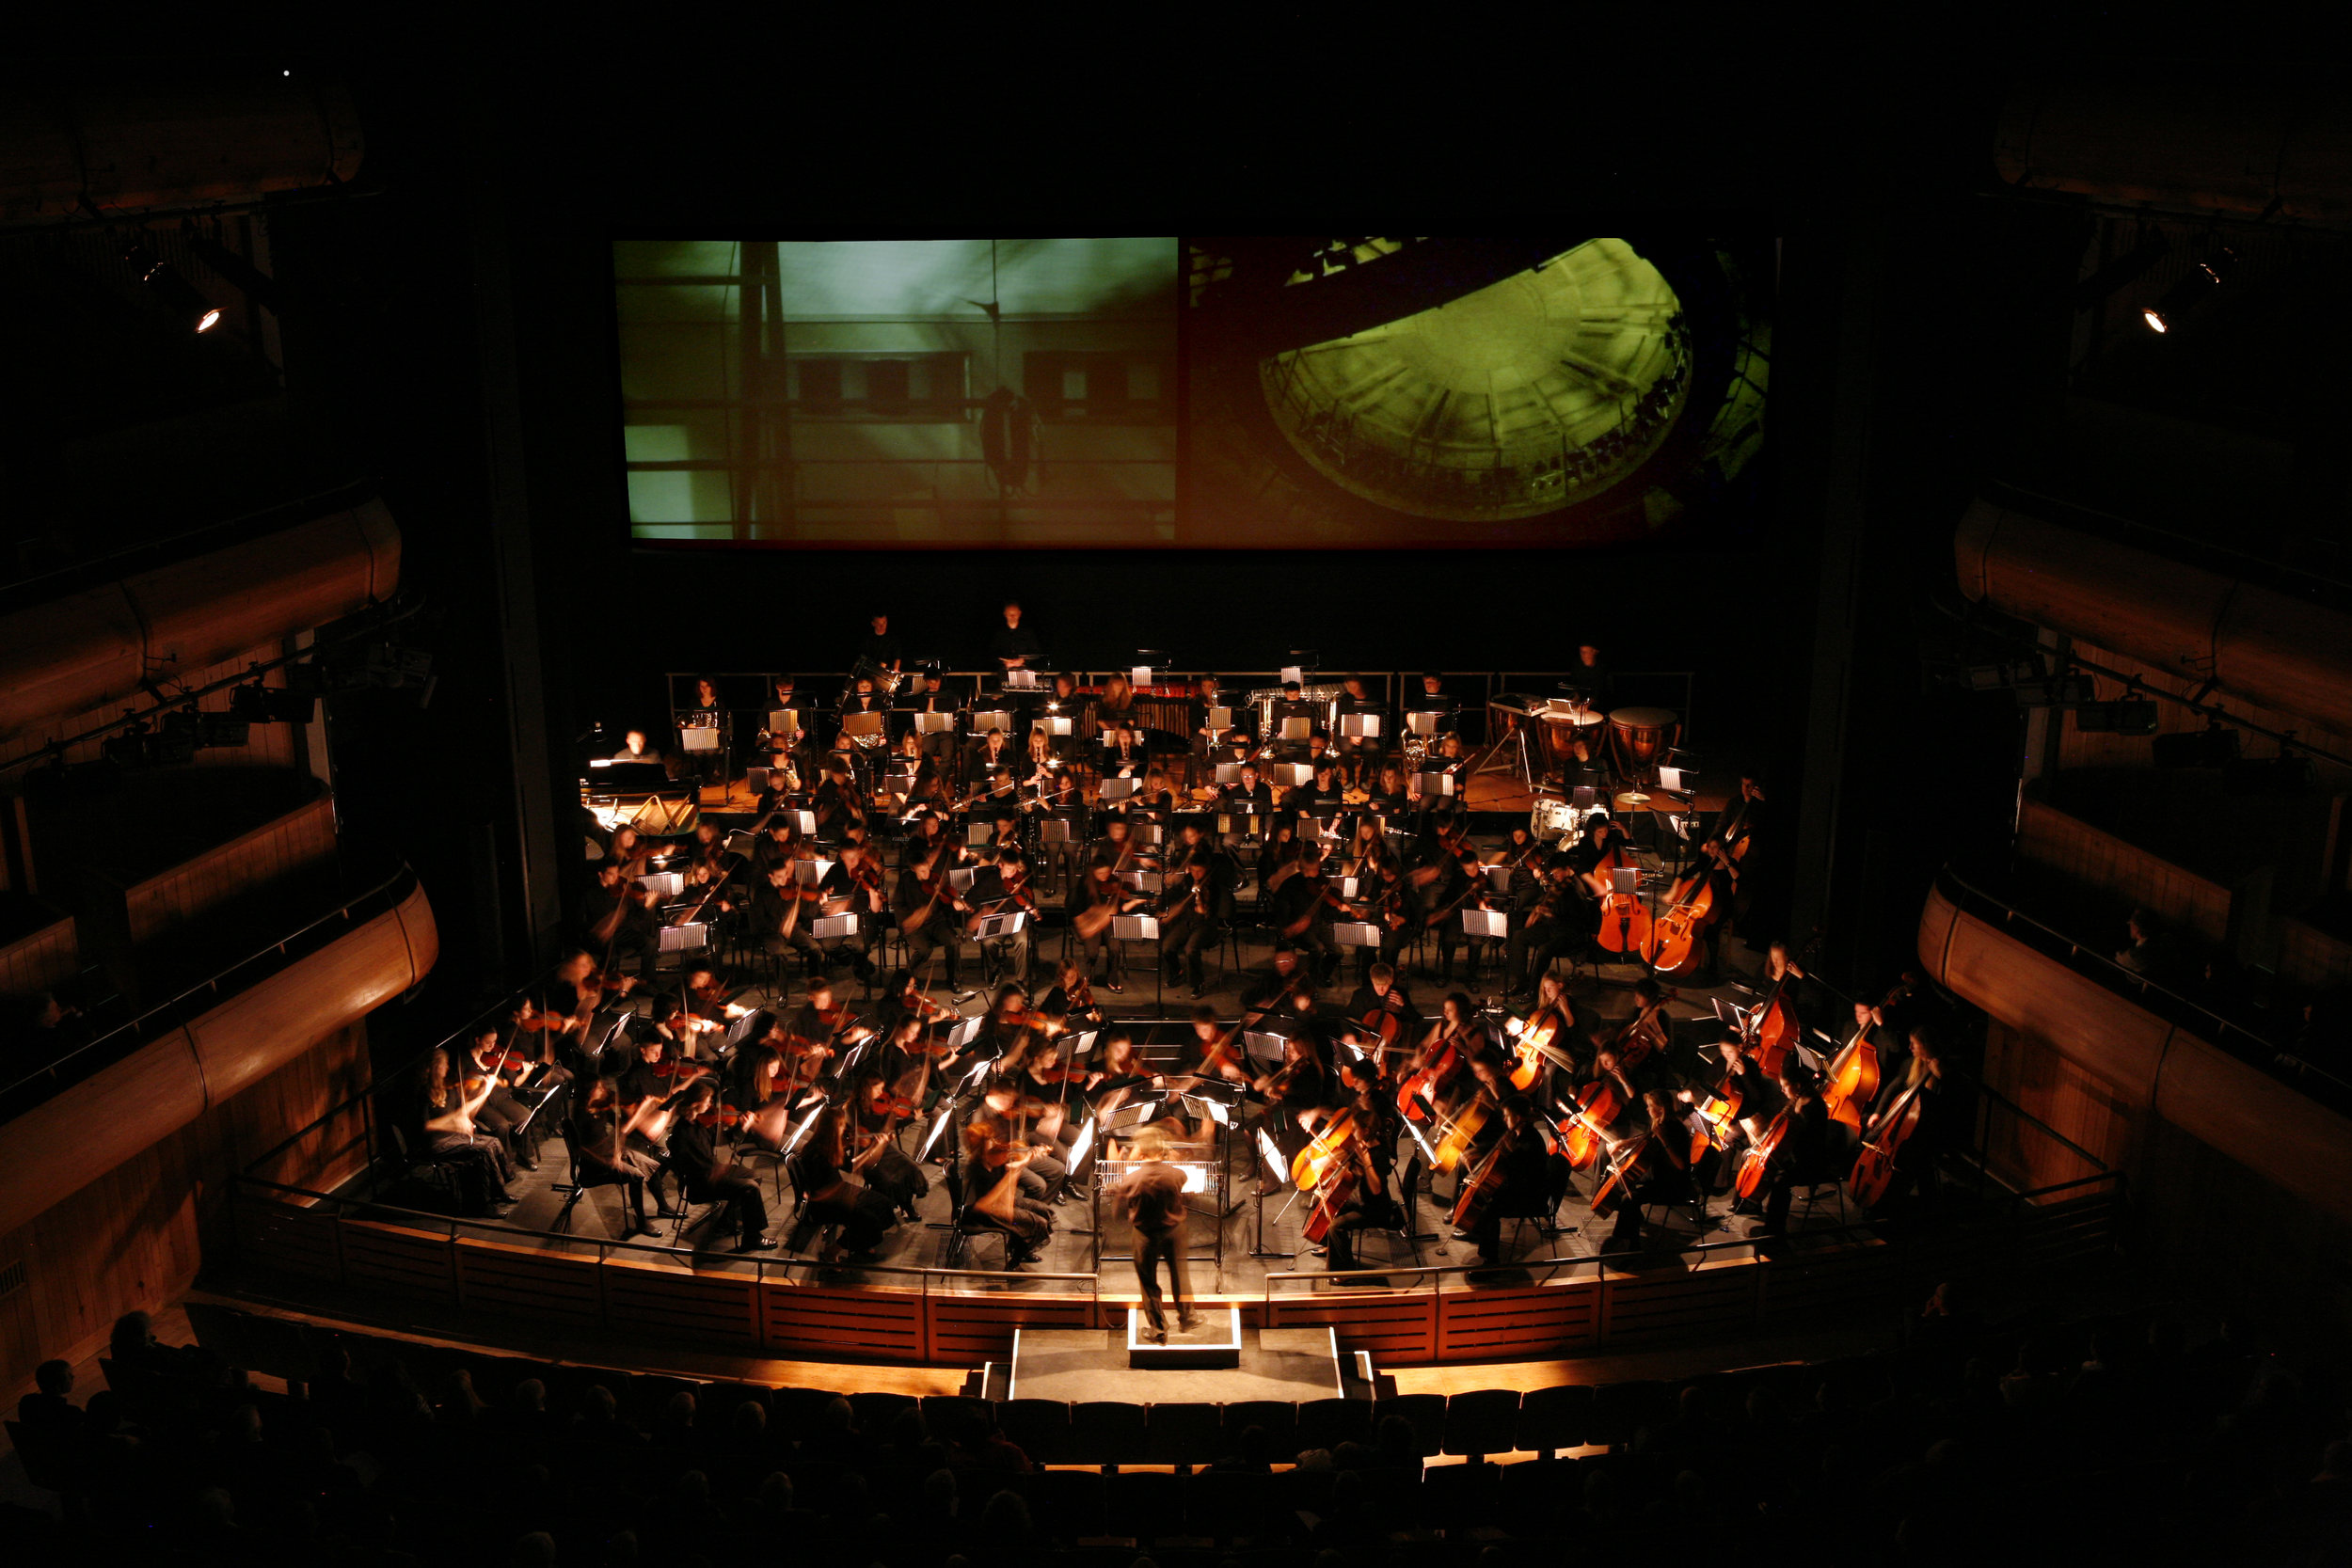 Screening of Auditorium, Glyndebourne Opera House, Nov 2007